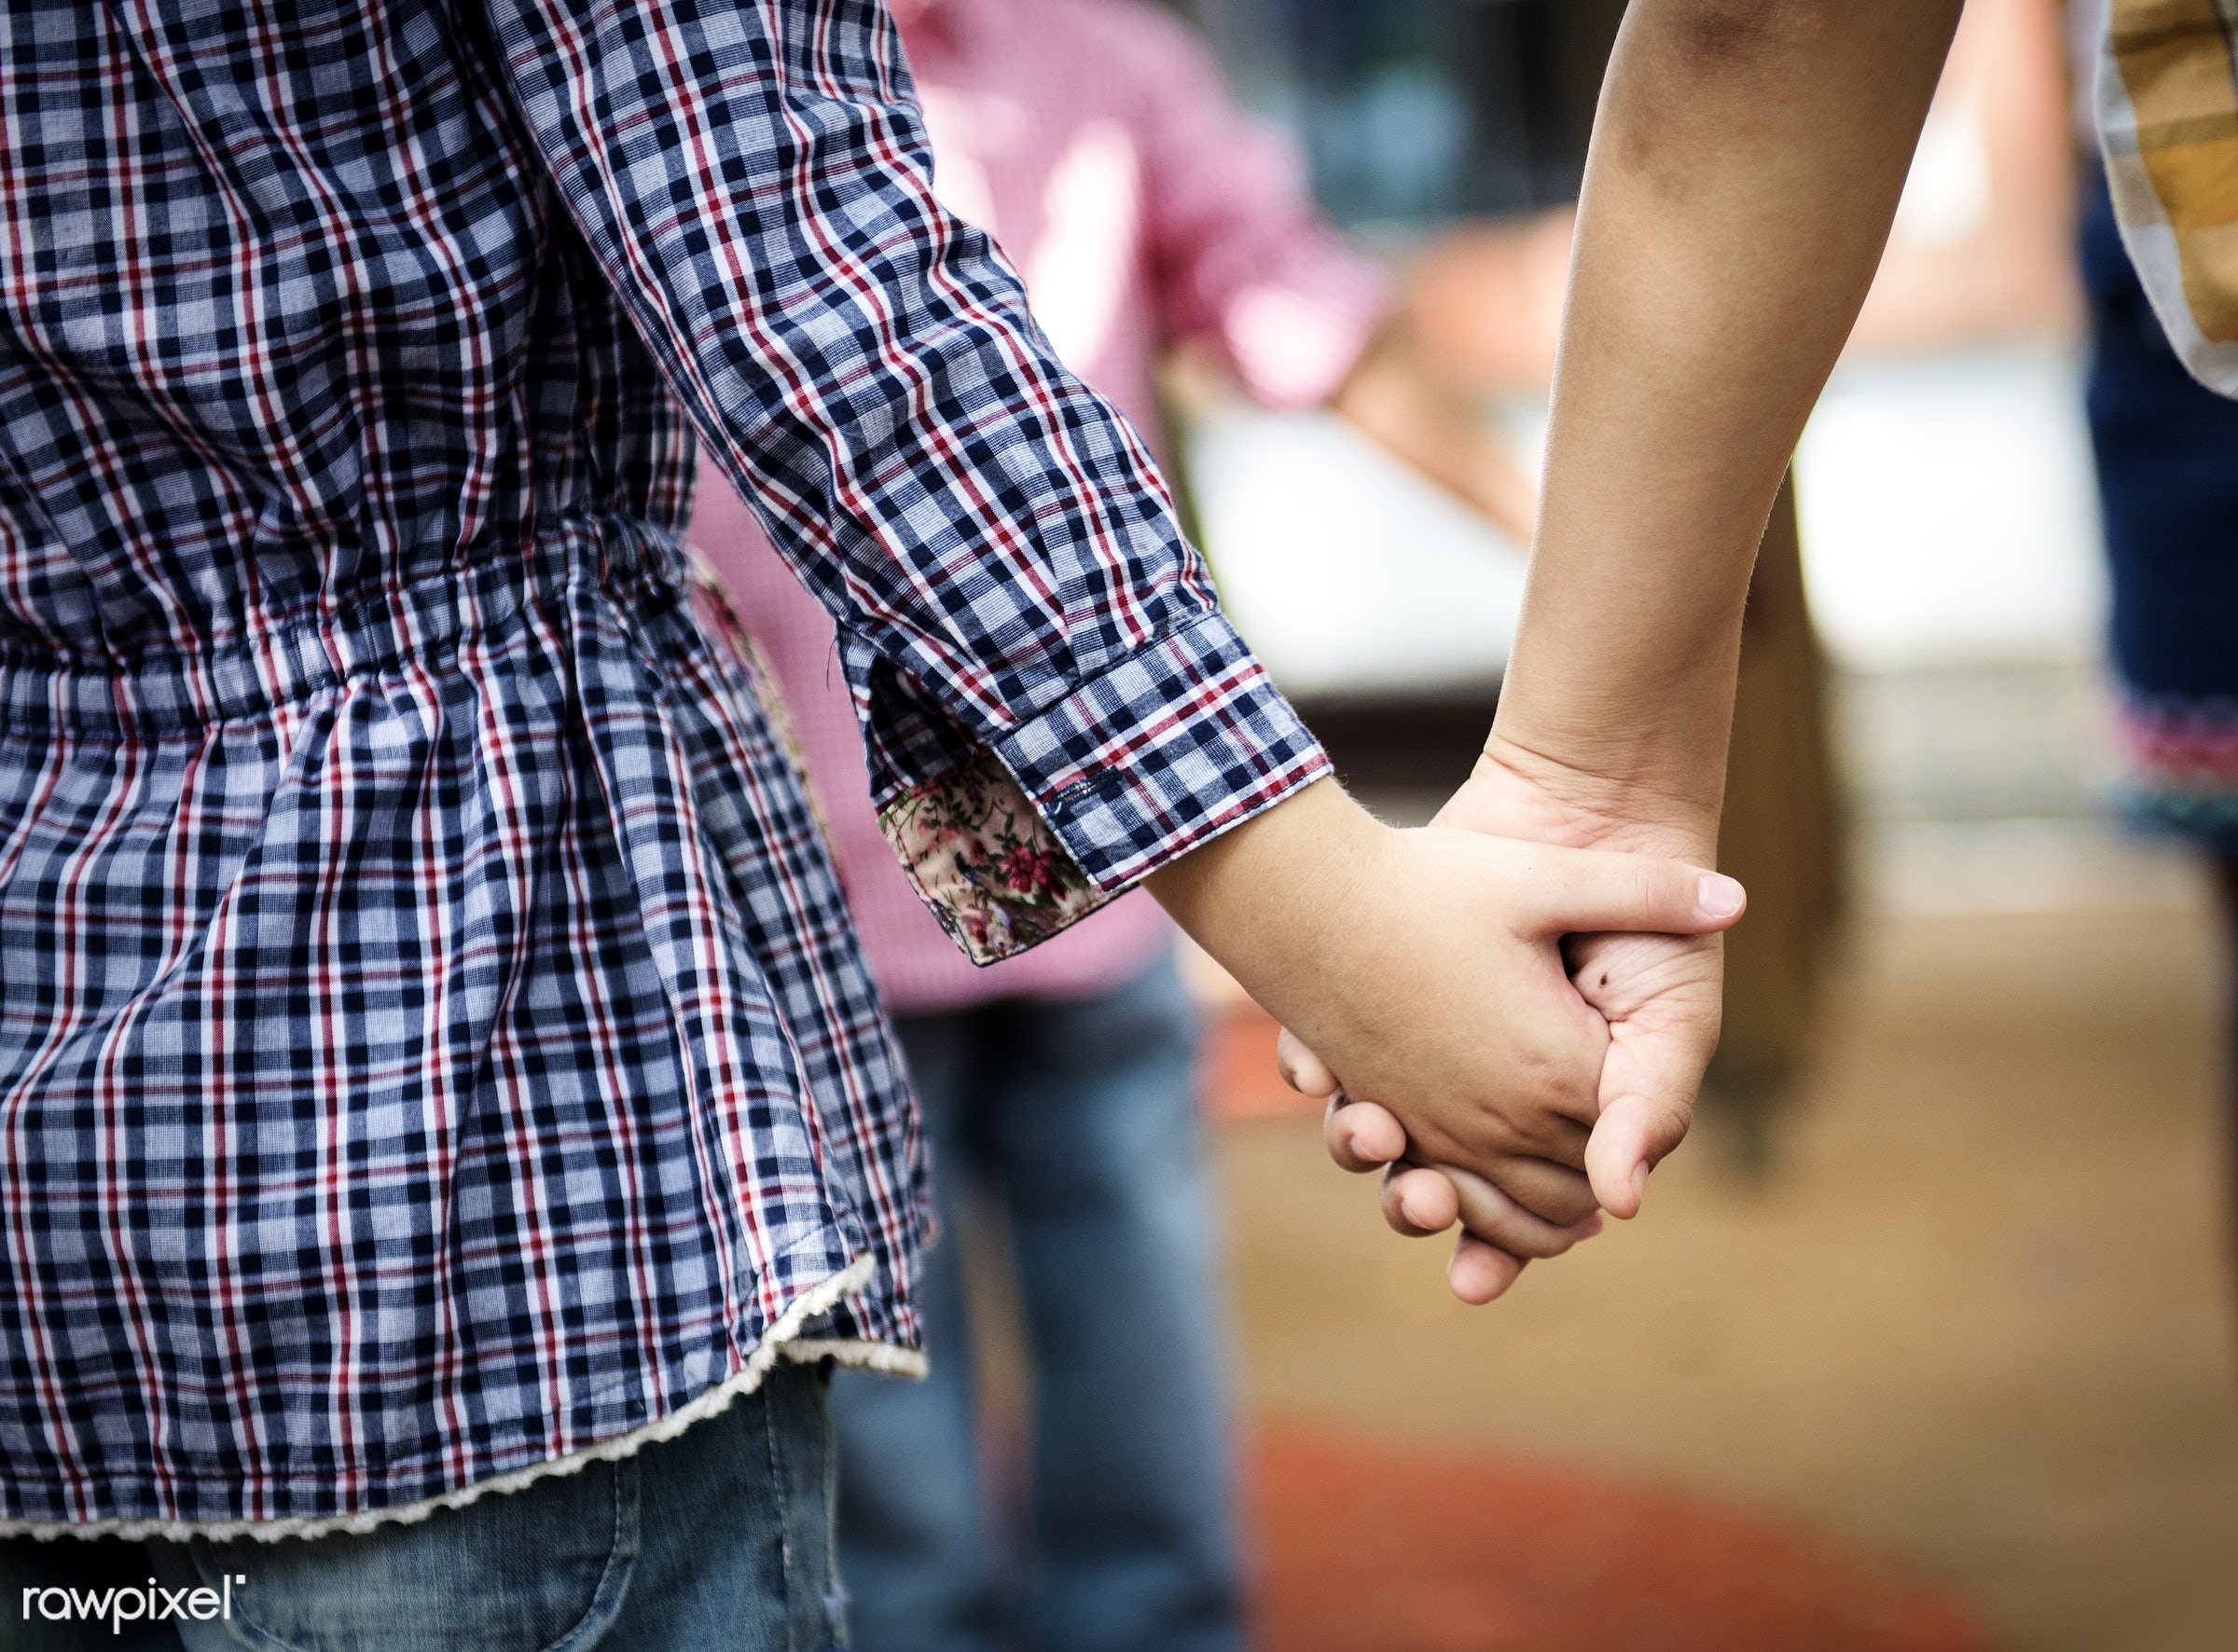 Kids holding hands at school - playful, holding, children, together, friends, hands, casual, friendship, gathering, cheerful...